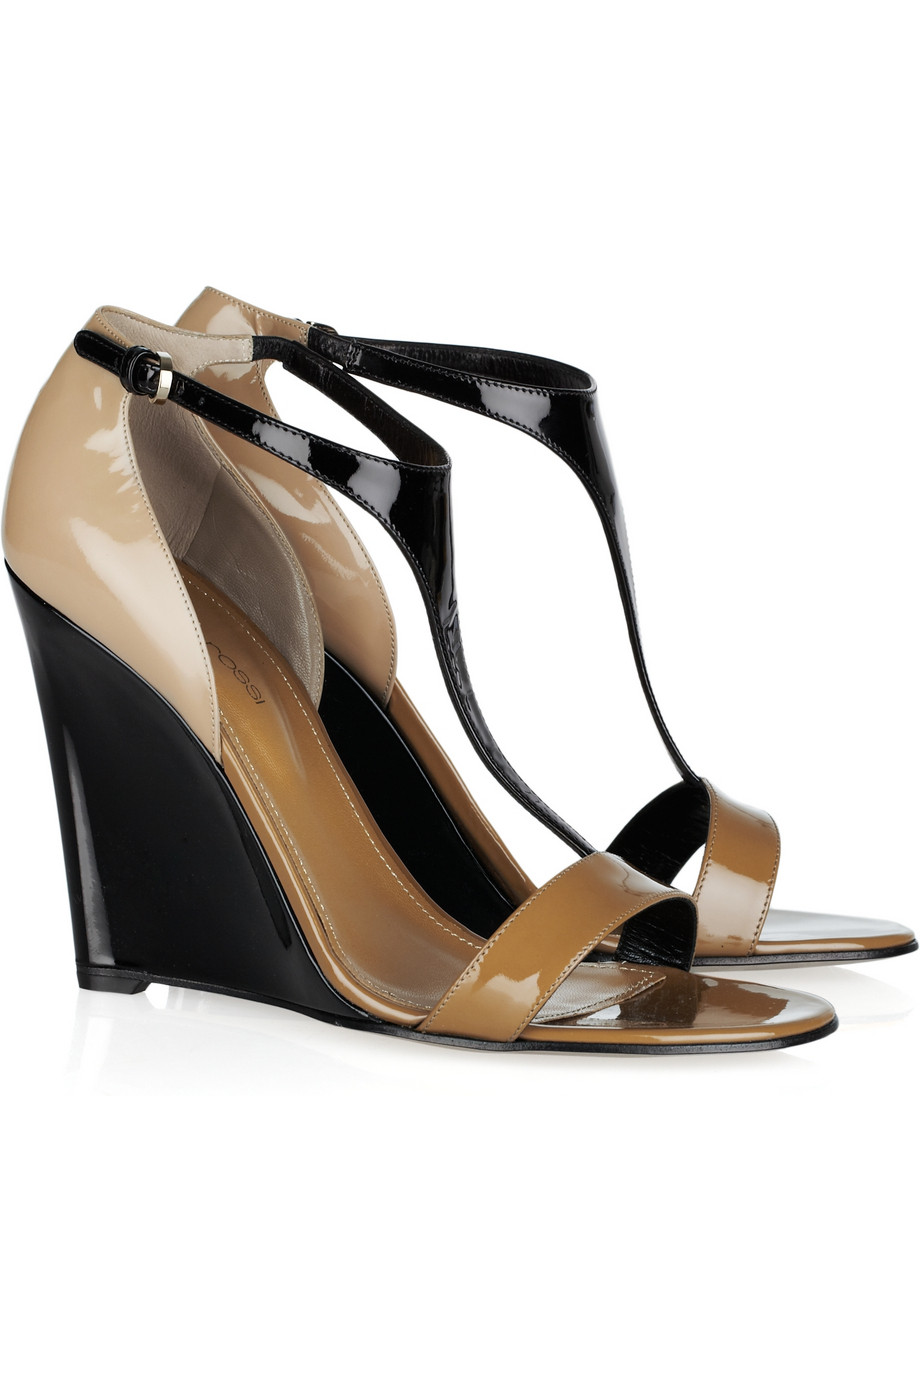 Sergio Rossi Color Blocked Patent Leather Wedge Sandals In